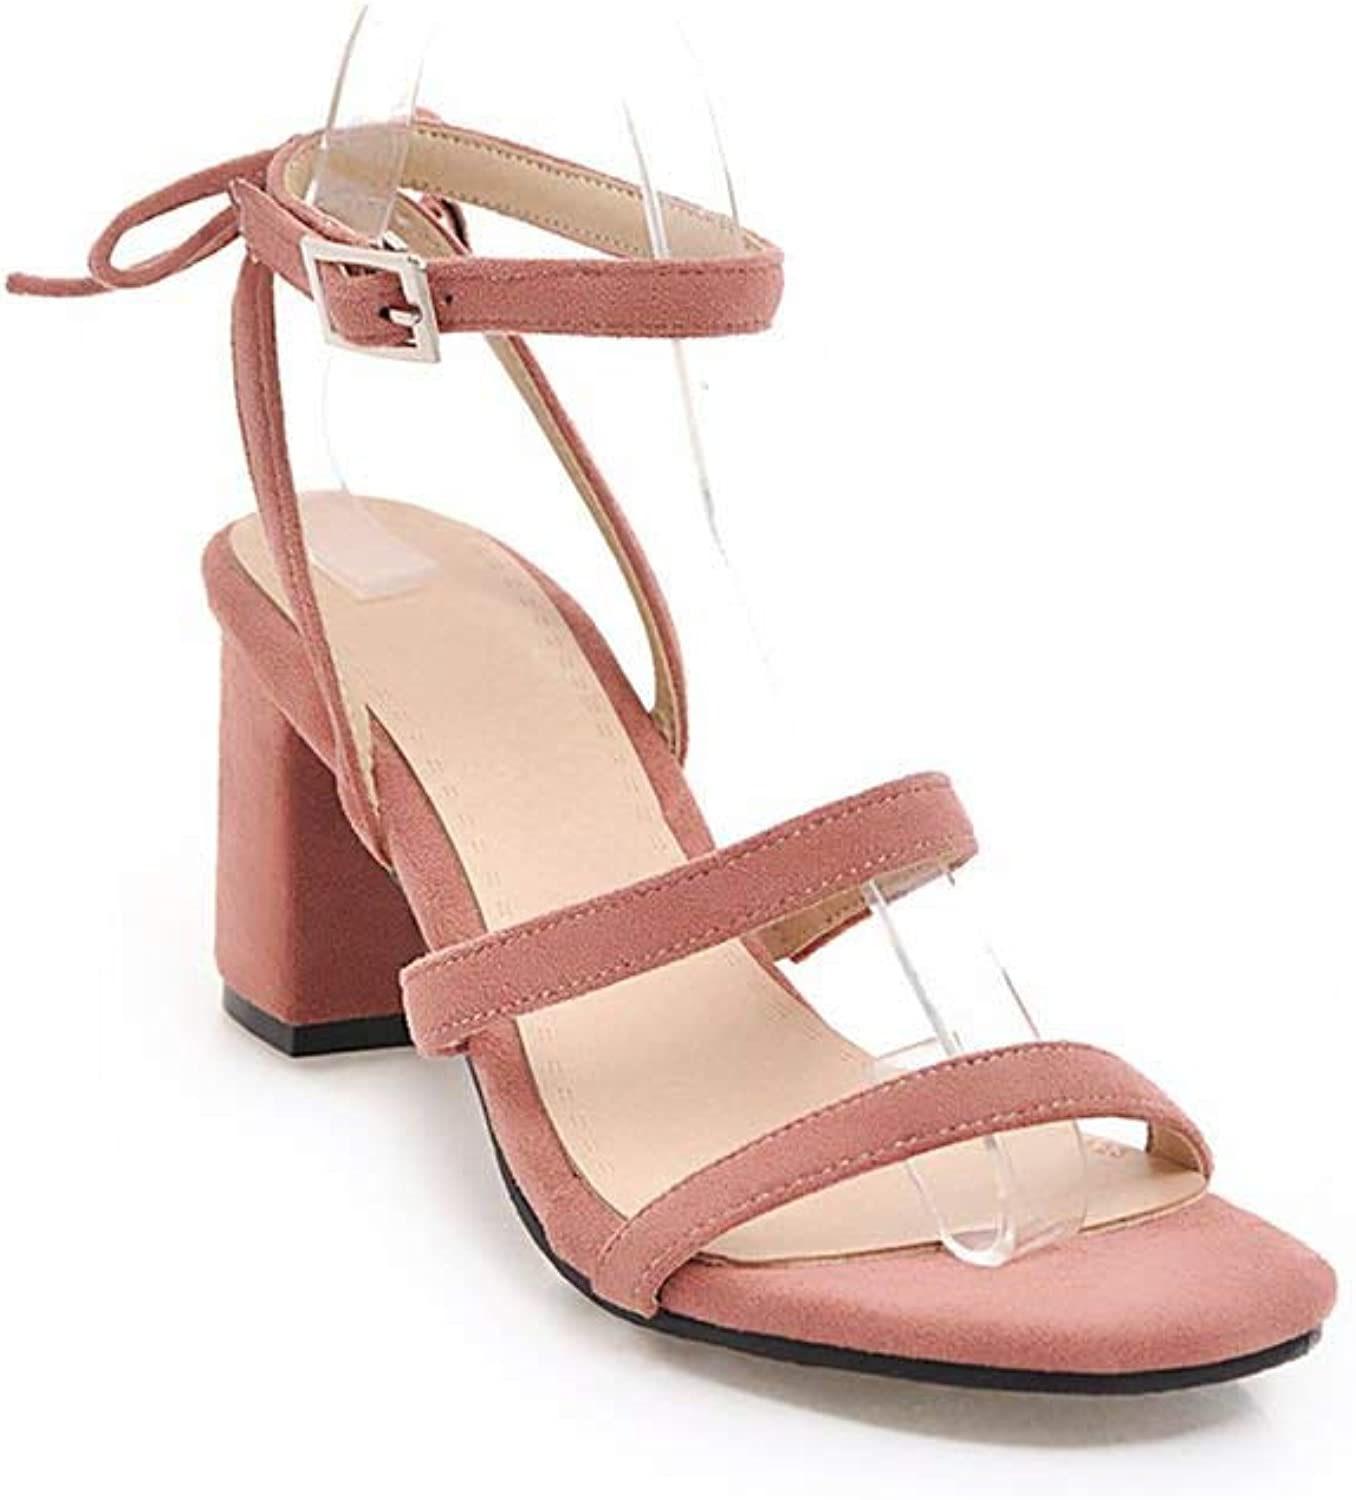 Lewis Pitman Women Sandals Woman Buckle Thick High Heels Flock Women shoes Large Size